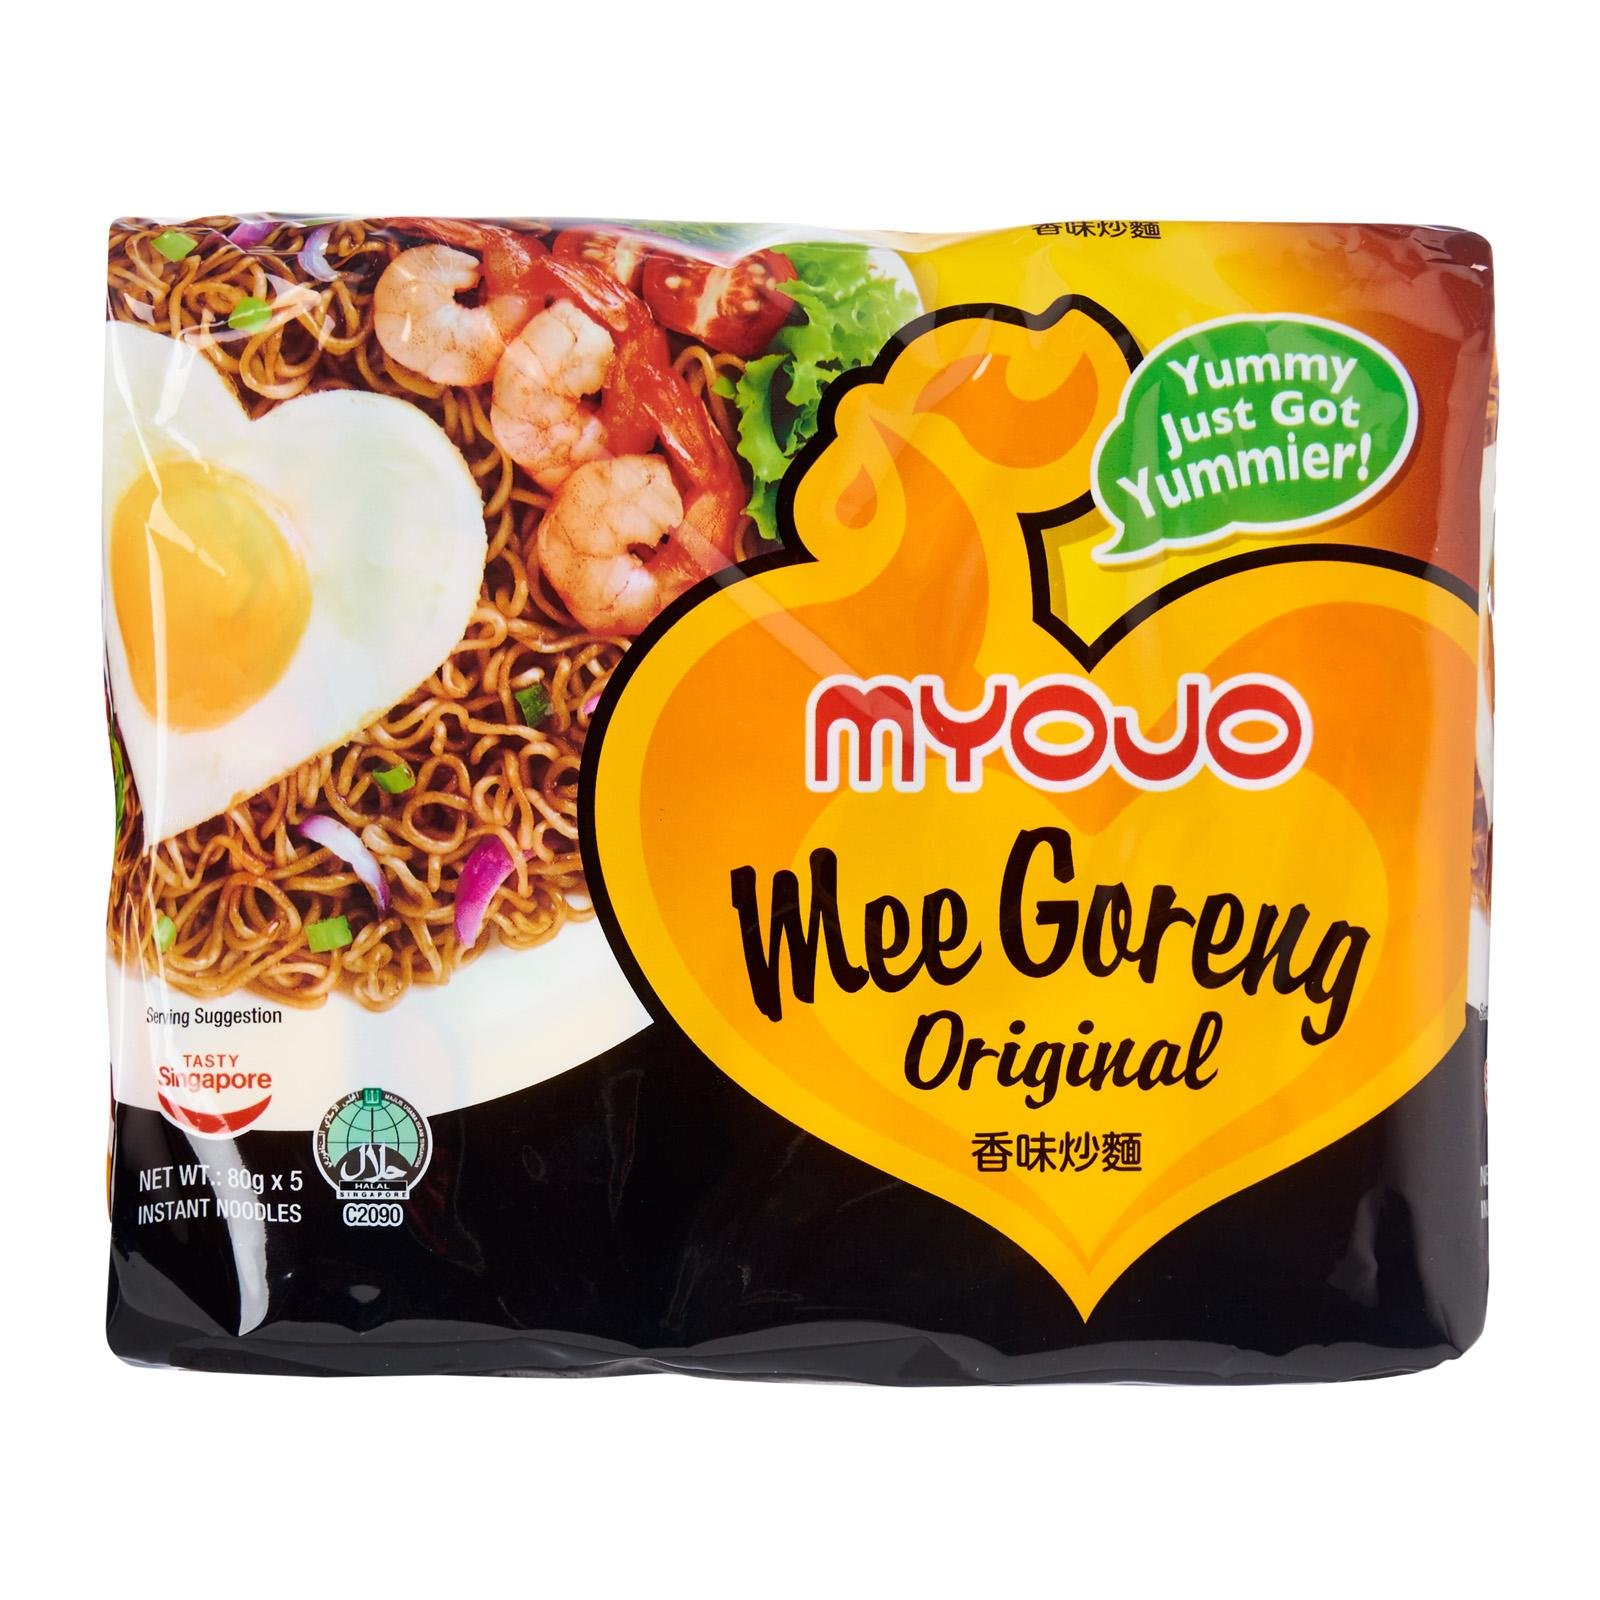 Myojo Mee Goreng Original/Dry Chewy Noodle With Salty Sweet Flavor/Prefect For Days When Hot Soup Is A Little Too Much For The Hot Weather/Yummy Just Got Yummier ! / 5 packs x 80g